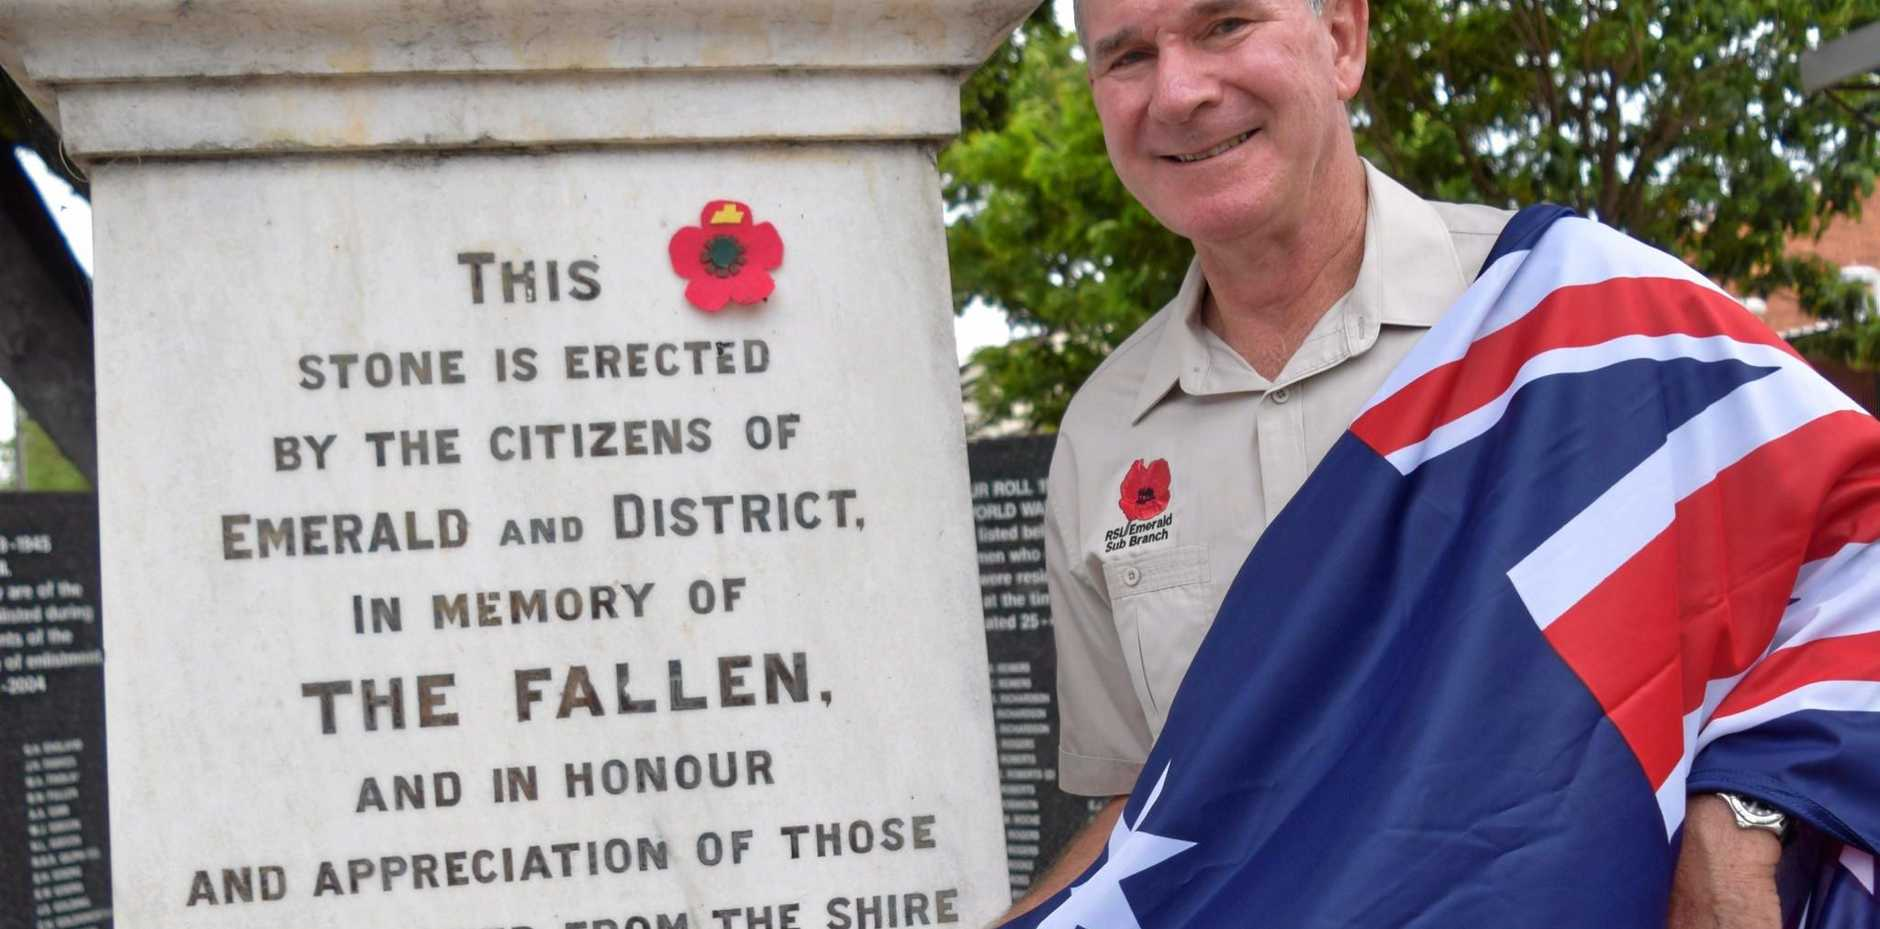 IMPORTANT: Bryan Ottone is encouraging people to come along to the Remembrance Day service and the unveiling of new flag poles at the Emerald Bowls Club.